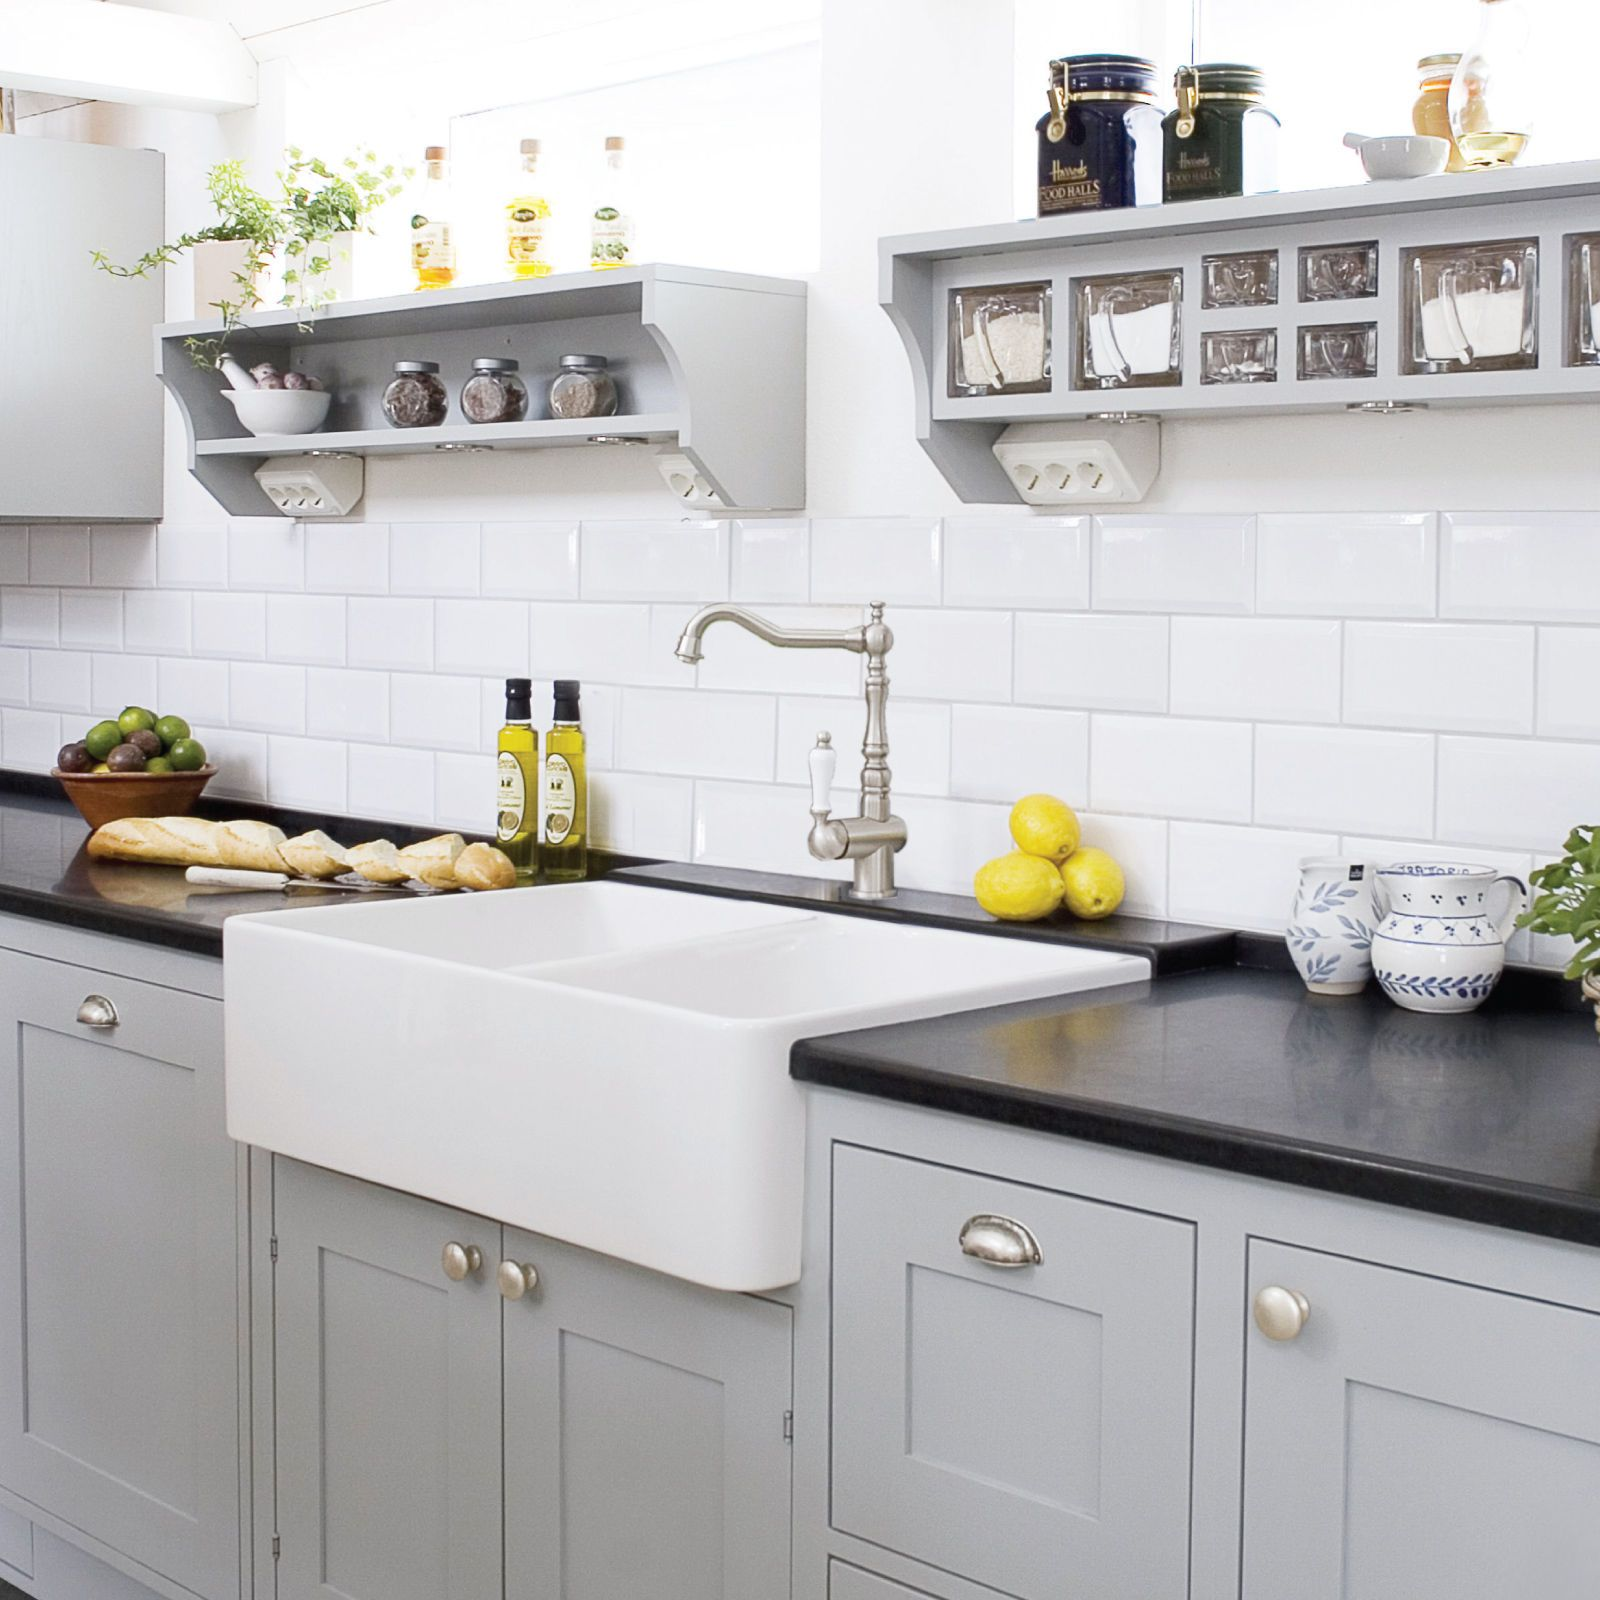 fireclay double bowl 33 apron front farmhouse sink white fluted